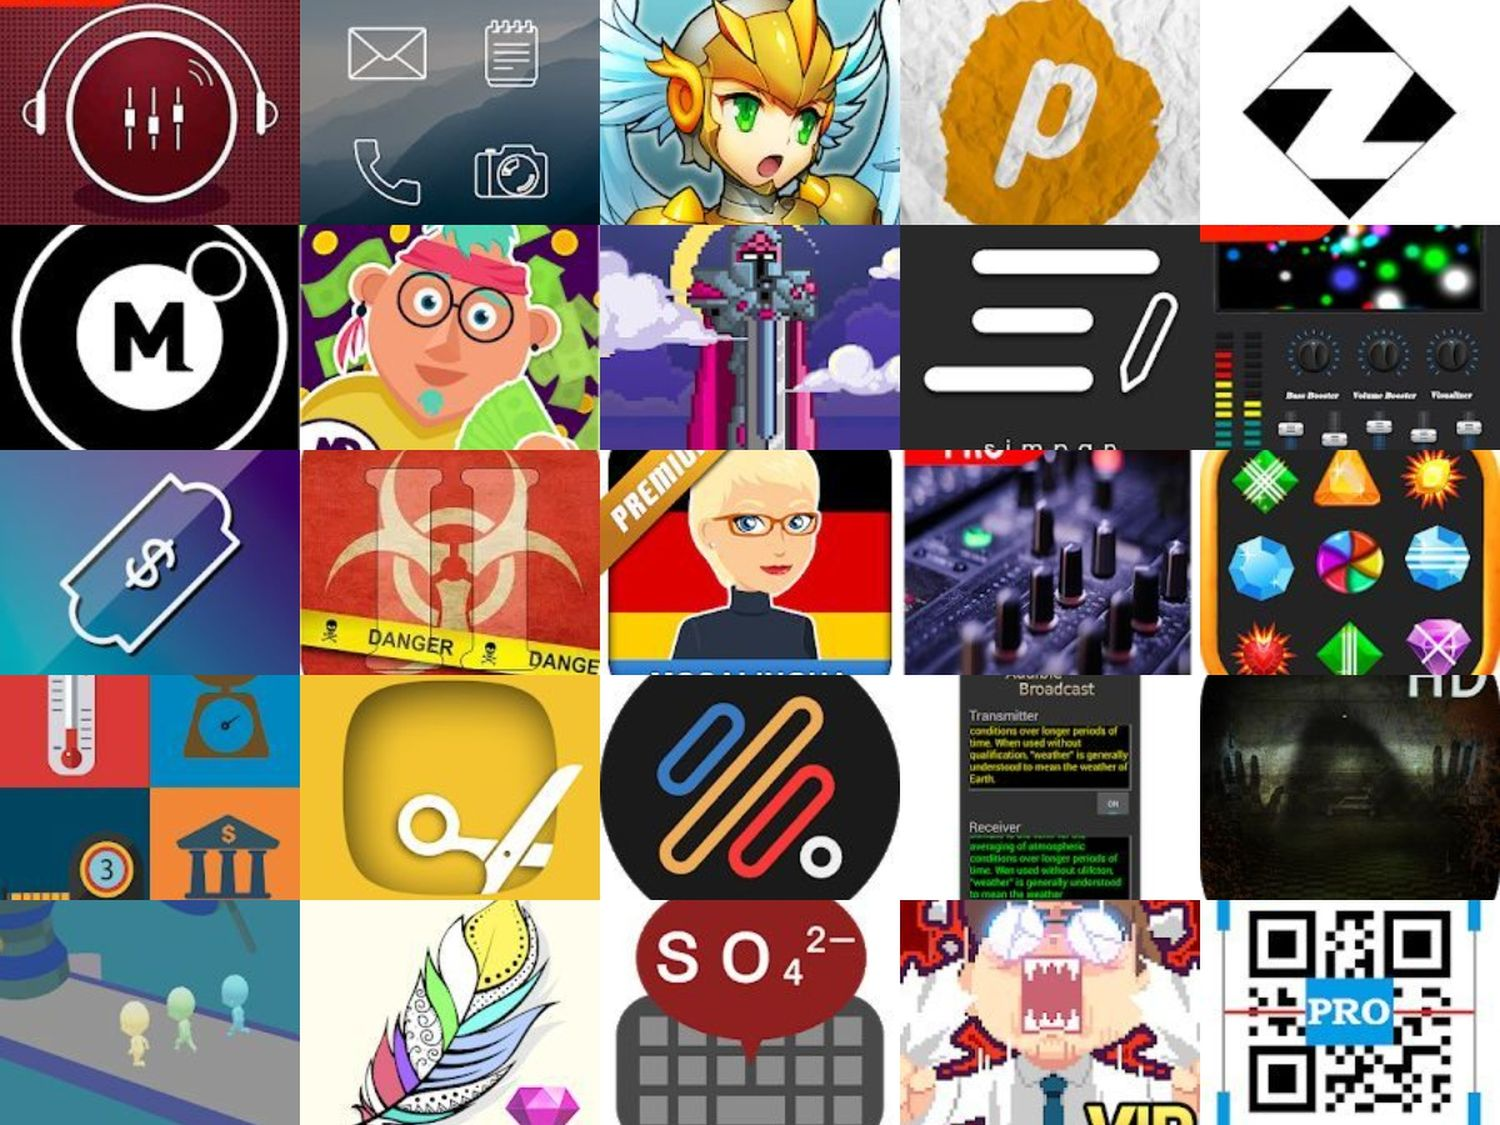 apps 01.10.2020